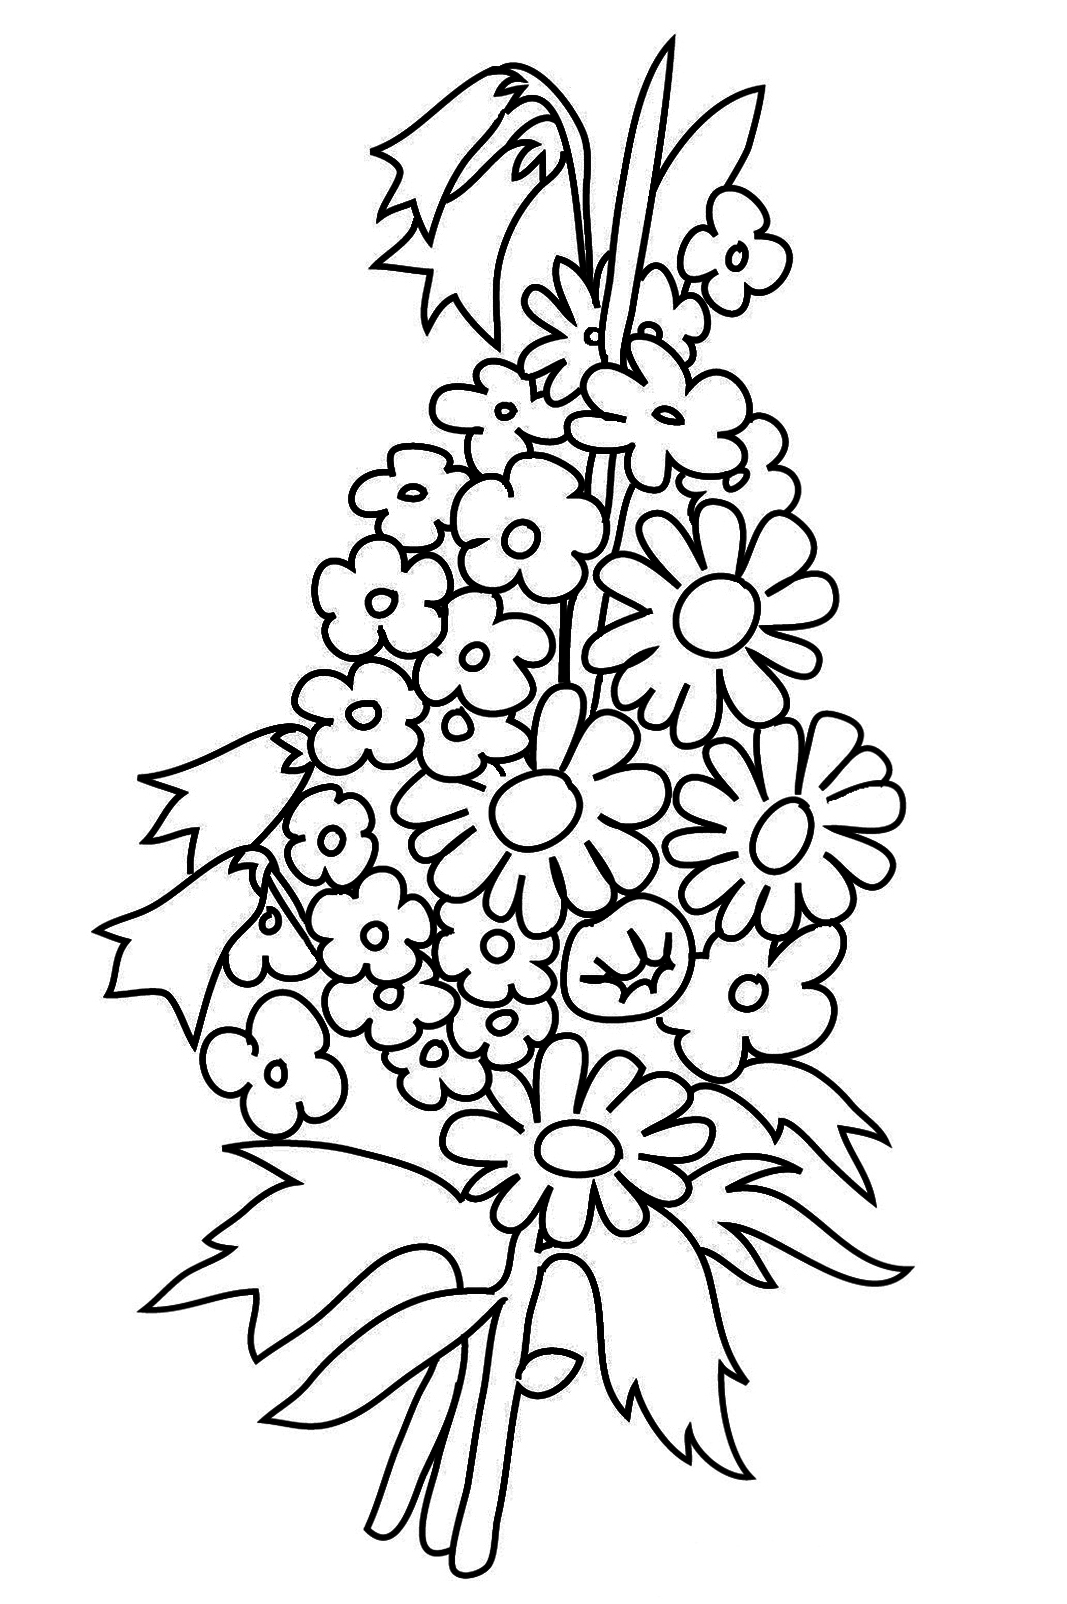 flower bouquet coloring pages bouquet of flowers coloring pages for childrens printable flower pages coloring bouquet